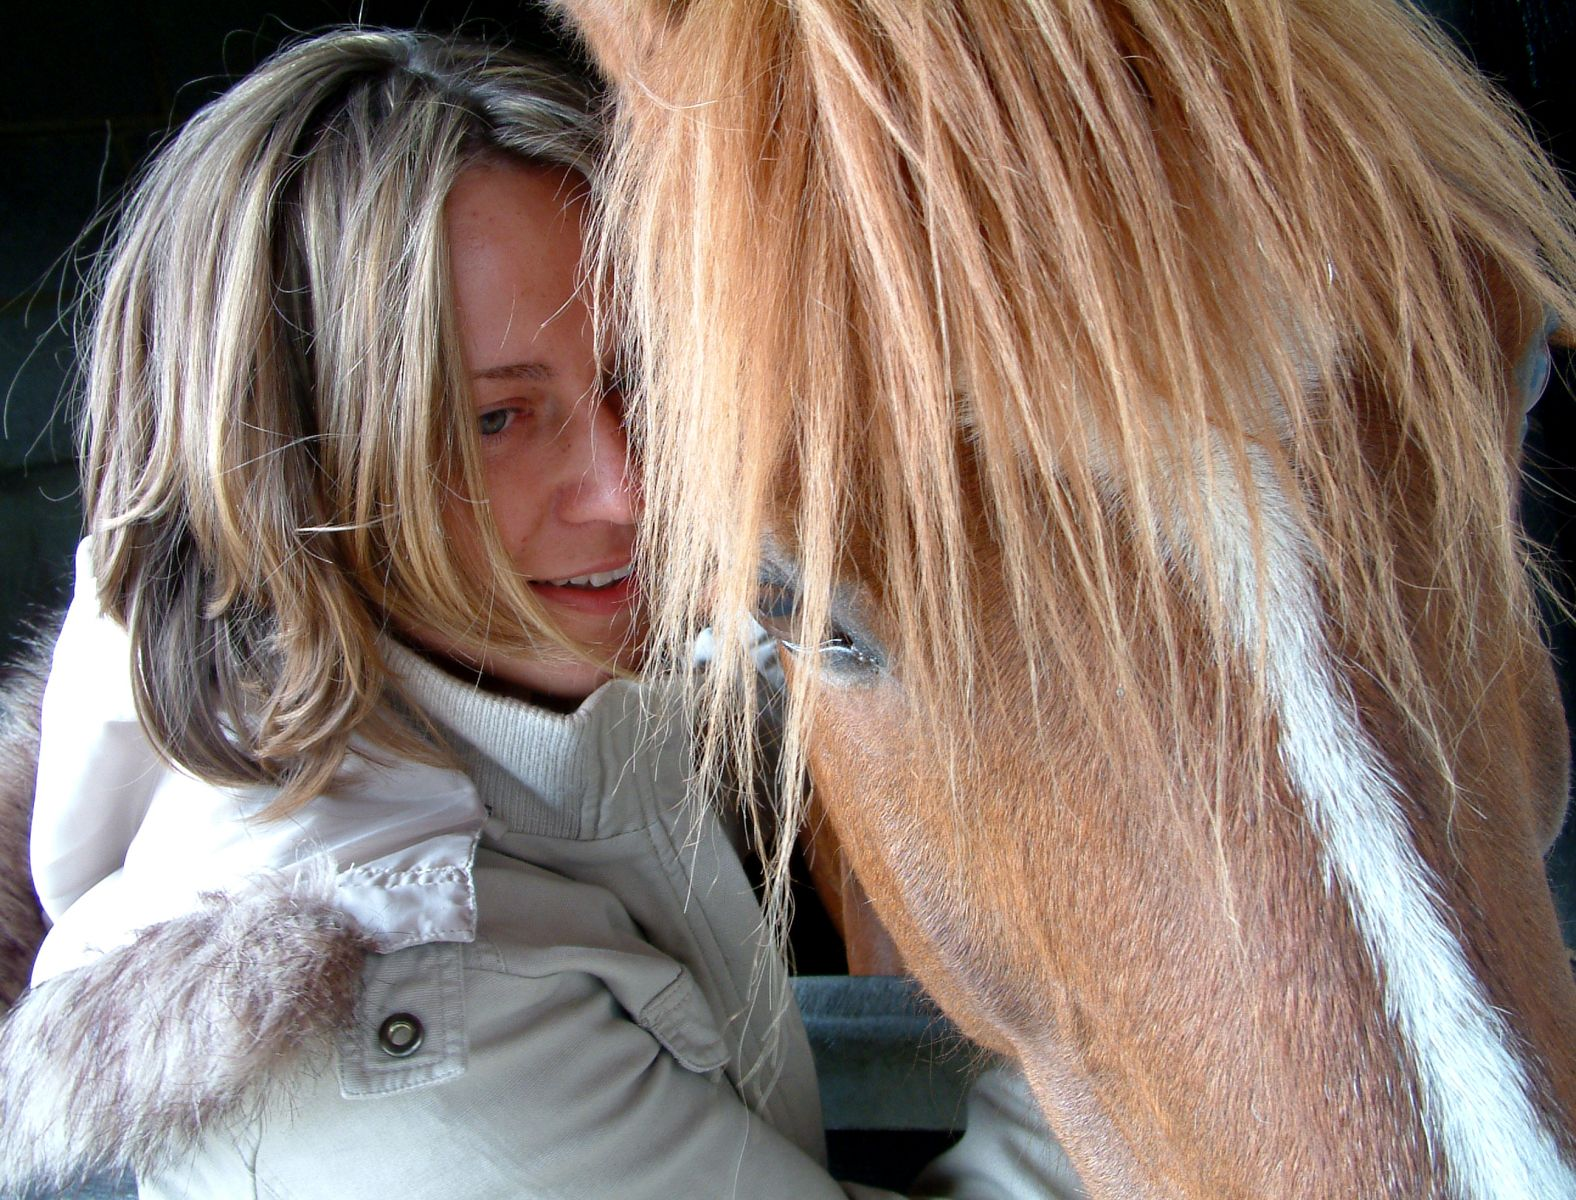 Horse and pony insurance in Spain, Spanish horse insurance, www.insuranceinspain.com